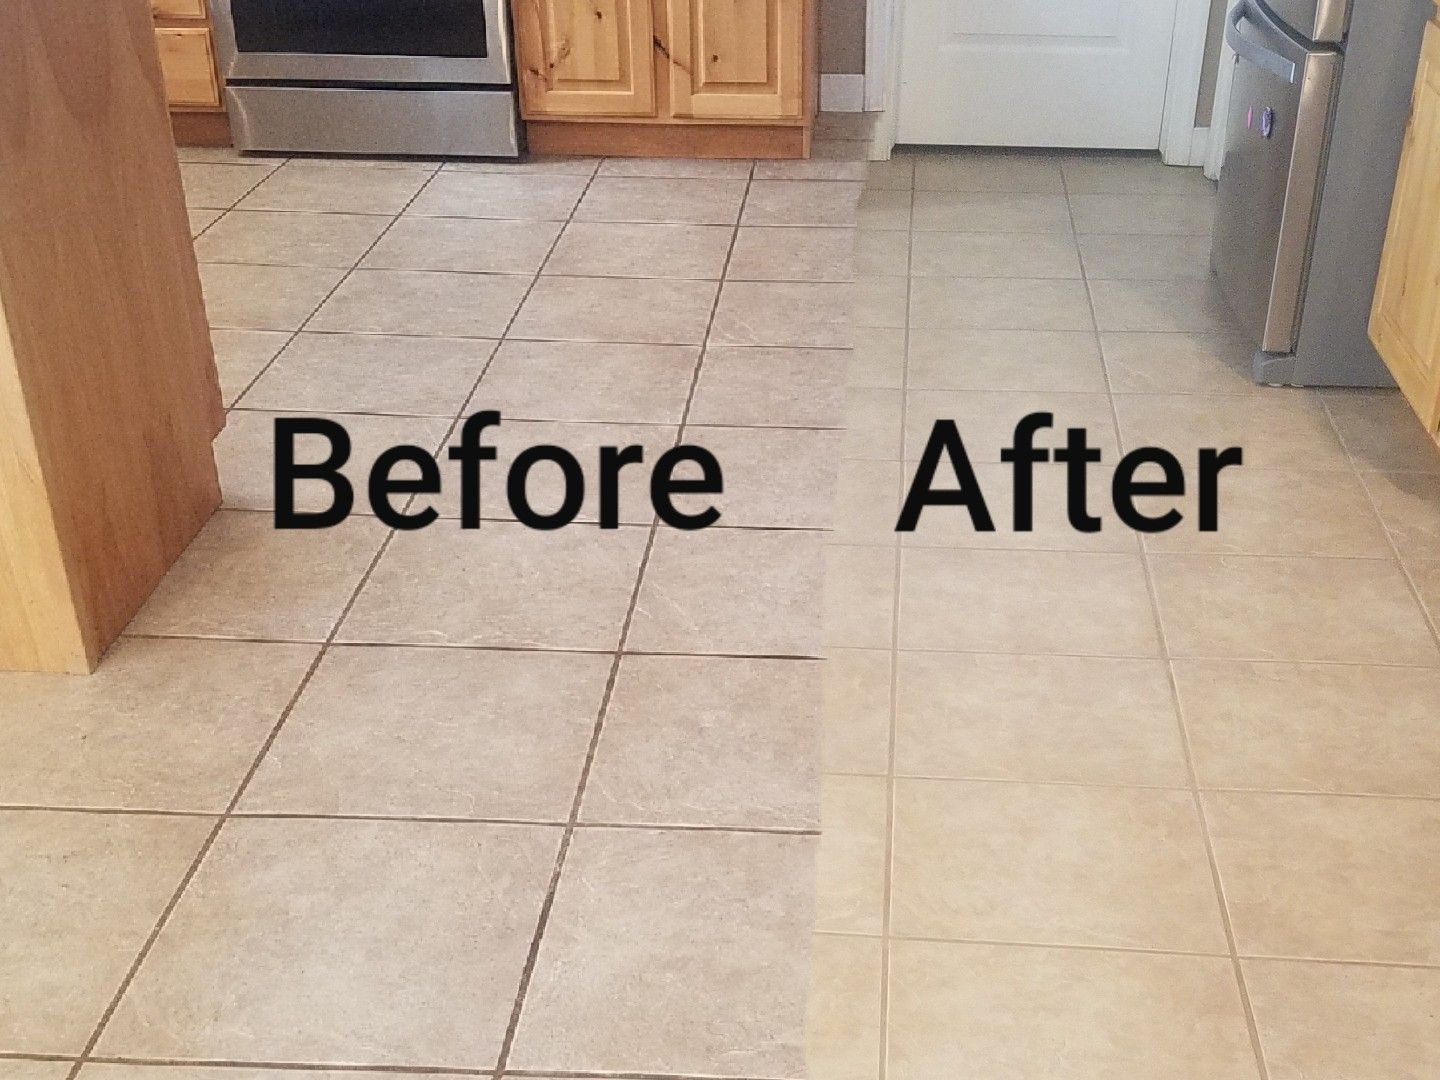 4 Ways To Clean Tile Grout Clean Tile Grout Clean Tile